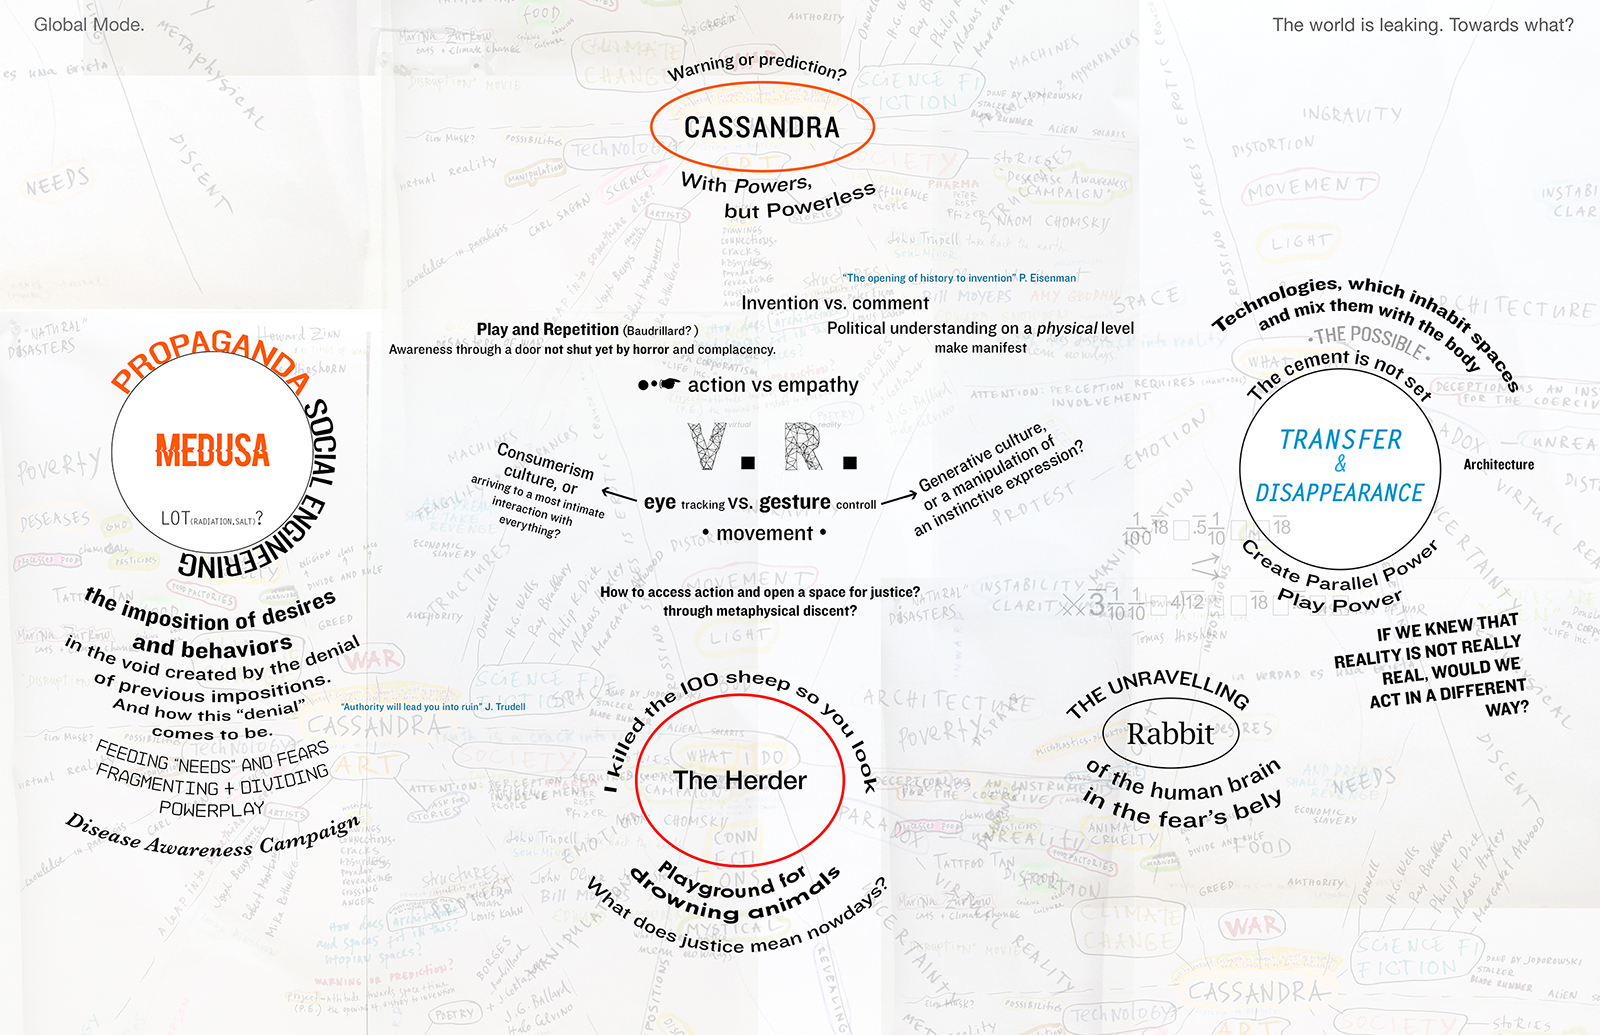 Cassandra, Medusa, The Herder and Transfer and Disappearance-research diagram